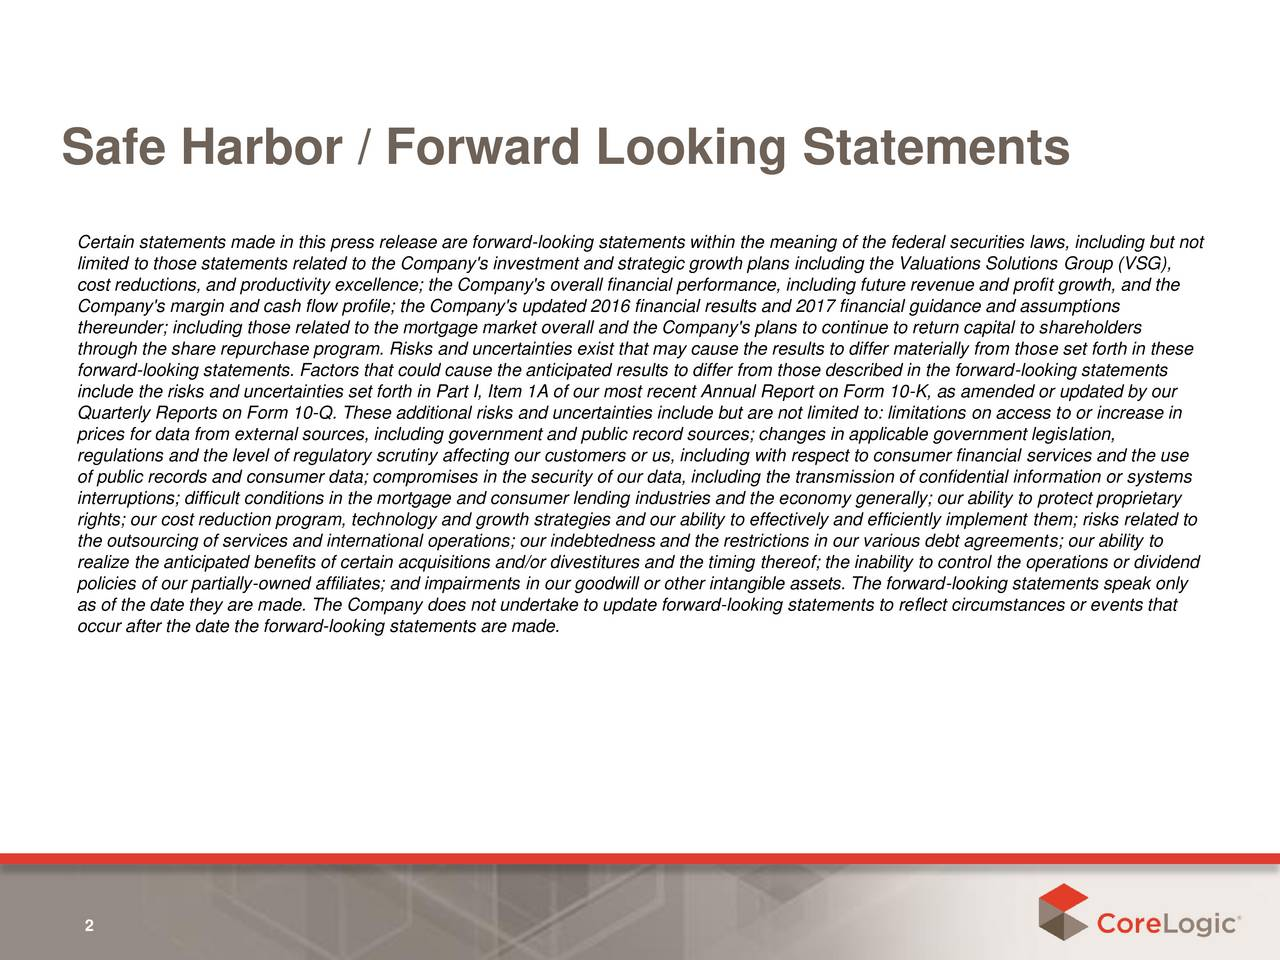 Certain statements made in this press release are forward-looking statements within the meaning of the federal securities laws, including but not limited to those statements related to the Company's investment and strategic growth plans including the Valuations Solutions Group (VSG), cost reductions, and productivity excellence; the Company's overall financial performance, including future revenue and profit growth, and the Company's margin and cash flow profile; the Company's updated 2016 financial results and 2017 financial guidance and assumptions thereunder; including those related to the mortgage market overall and the Company's plans to continue to return capital to shareholders through the share repurchase program. Risks and uncertainties exist that may cause the results to differ materially from those set forth in these forward-looking statements. Factors that could cause the anticipated results to differ from those described in the forward-looking statements include the risks and uncertainties set forth in Part I, Item 1A of our most recent Annual Report on Form 10-K, as amended or updated by our Quarterly Reports on Form 10-Q. These additional risks and uncertainties include but are not limited to: limitations on access to or increase in prices for data from external sources, including government and public record sources; changes in applicable government legislation, regulations and the level of regulatory scrutiny affecting our customers or us, including with respect to consumer financial services and the use of public records and consumer data; compromises in the security of our data, including the transmission of confidential information or systems interruptions; difficult conditions in the mortgage and consumer lending industries and the economy generally; our ability to protect proprietary rights; our cost reduction program, technology and growth strategies and our ability to effectively and efficiently implement them; risks related to the outsourcing of services and international operations; our indebtedness and the restrictions in our various debt agreements; our ability to realize the anticipated benefits of certain acquisitions and/or divestitures and the timing thereof; the inability to control the operations or dividend policies of our partially-owned affiliates; and impairments in our goodwill or other intangible assets. The forward-looking statements speak only as of the date they are made. The Company does not undertake to update forward-looking statements to reflect circumstances or events that occur after the date the forward-looking statements are made. 2